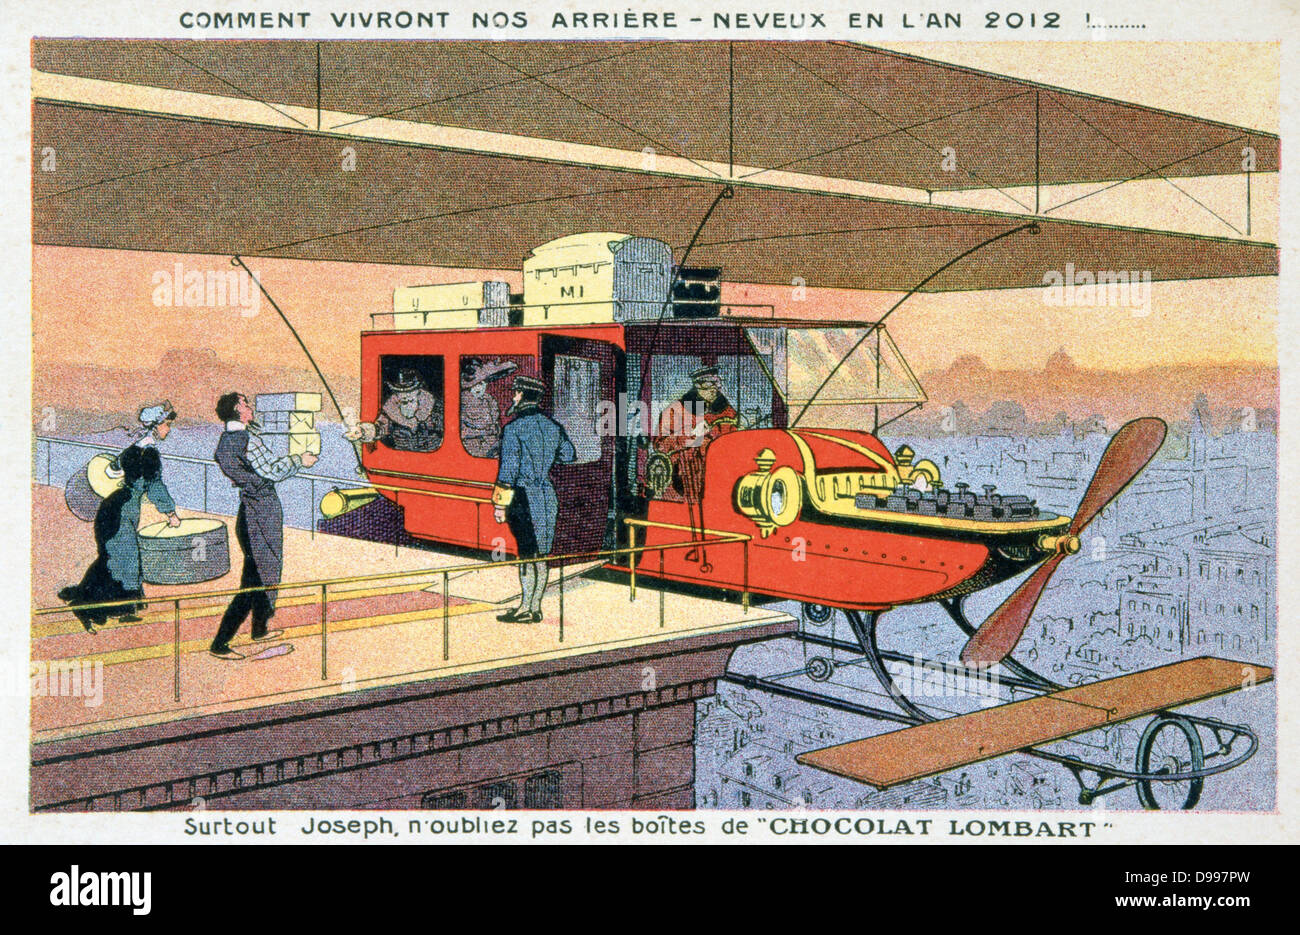 Early 20th century trade card imagining fashionable travel in 2012. Private biplane collecting passengers from roof - Stock Image